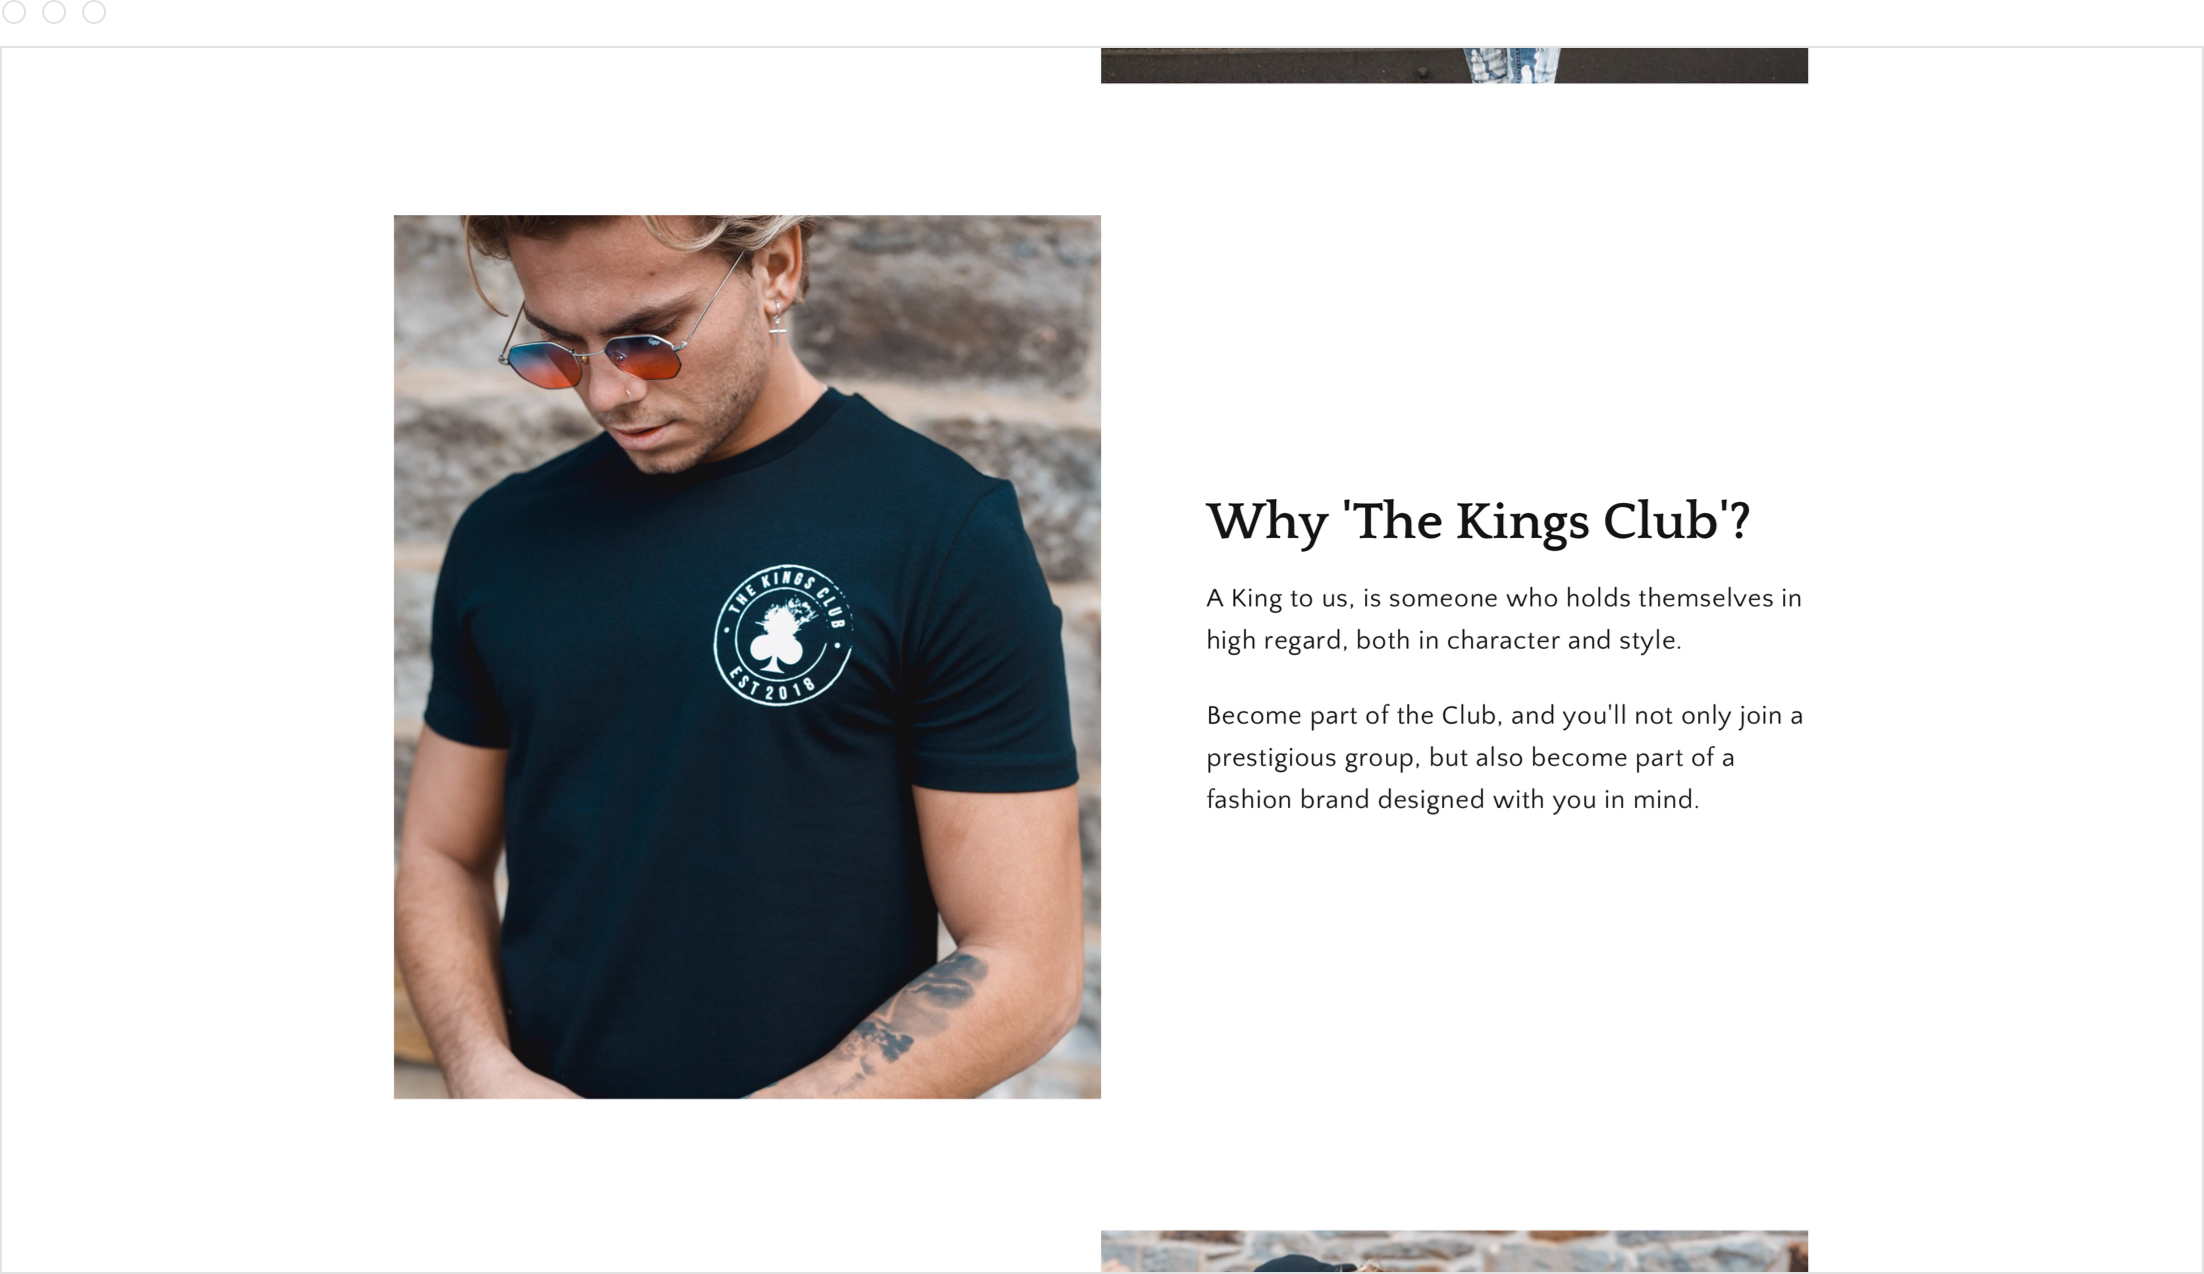 Website and online store design by Jack Watkins for men's clothing brand, The Kings Club